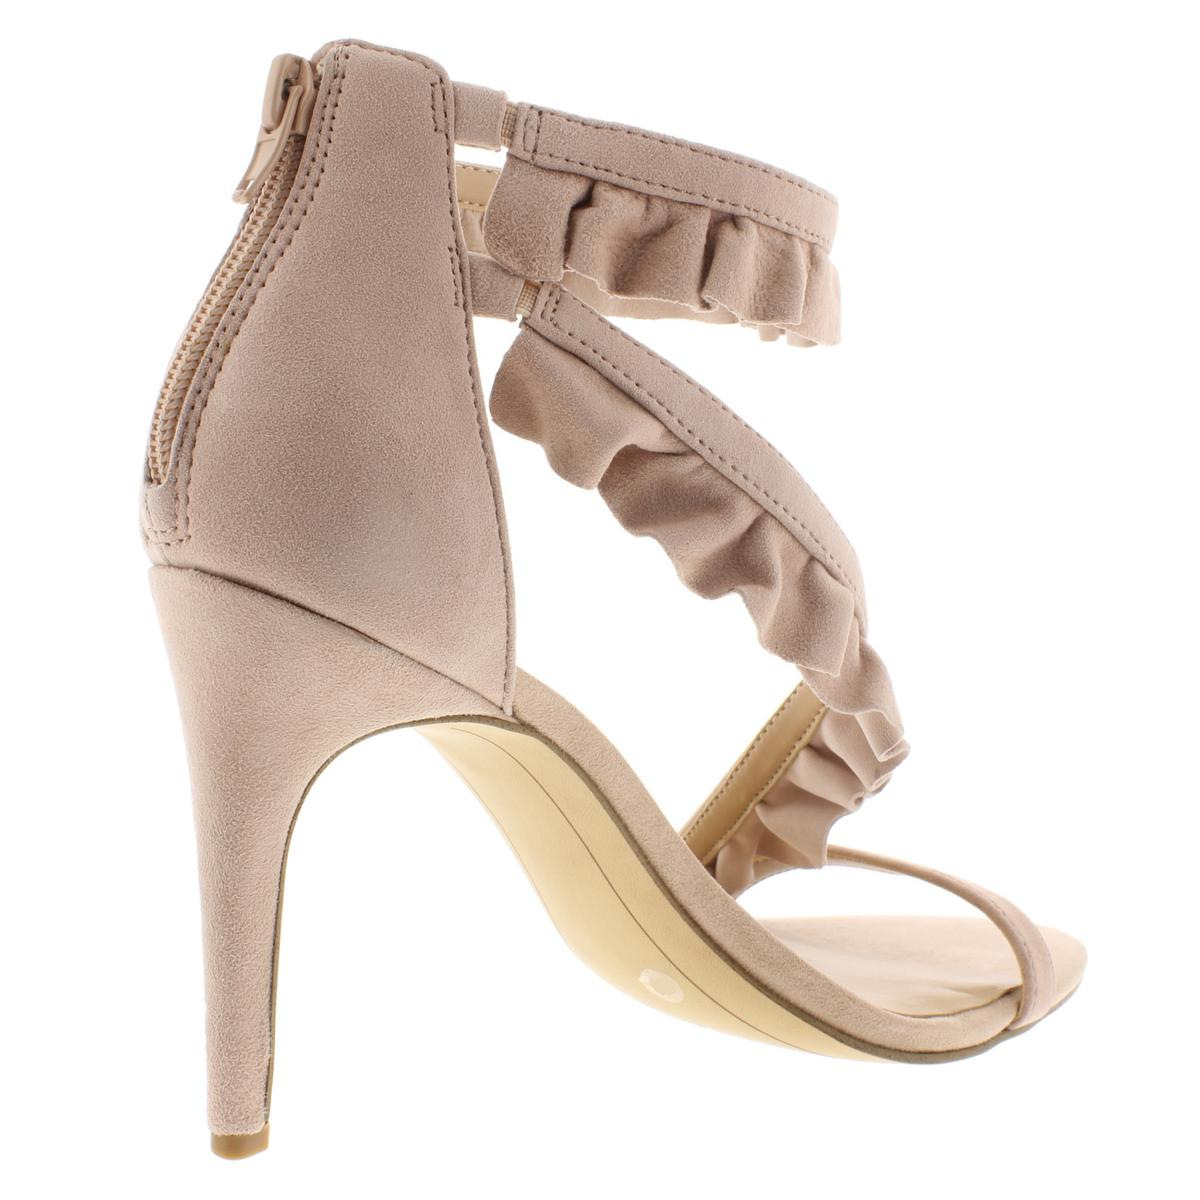 INC-Womens-Rezza-Suede-Heels-Open-Toe-Dress-Sandals-Shoes-BHFO-7122 thumbnail 6